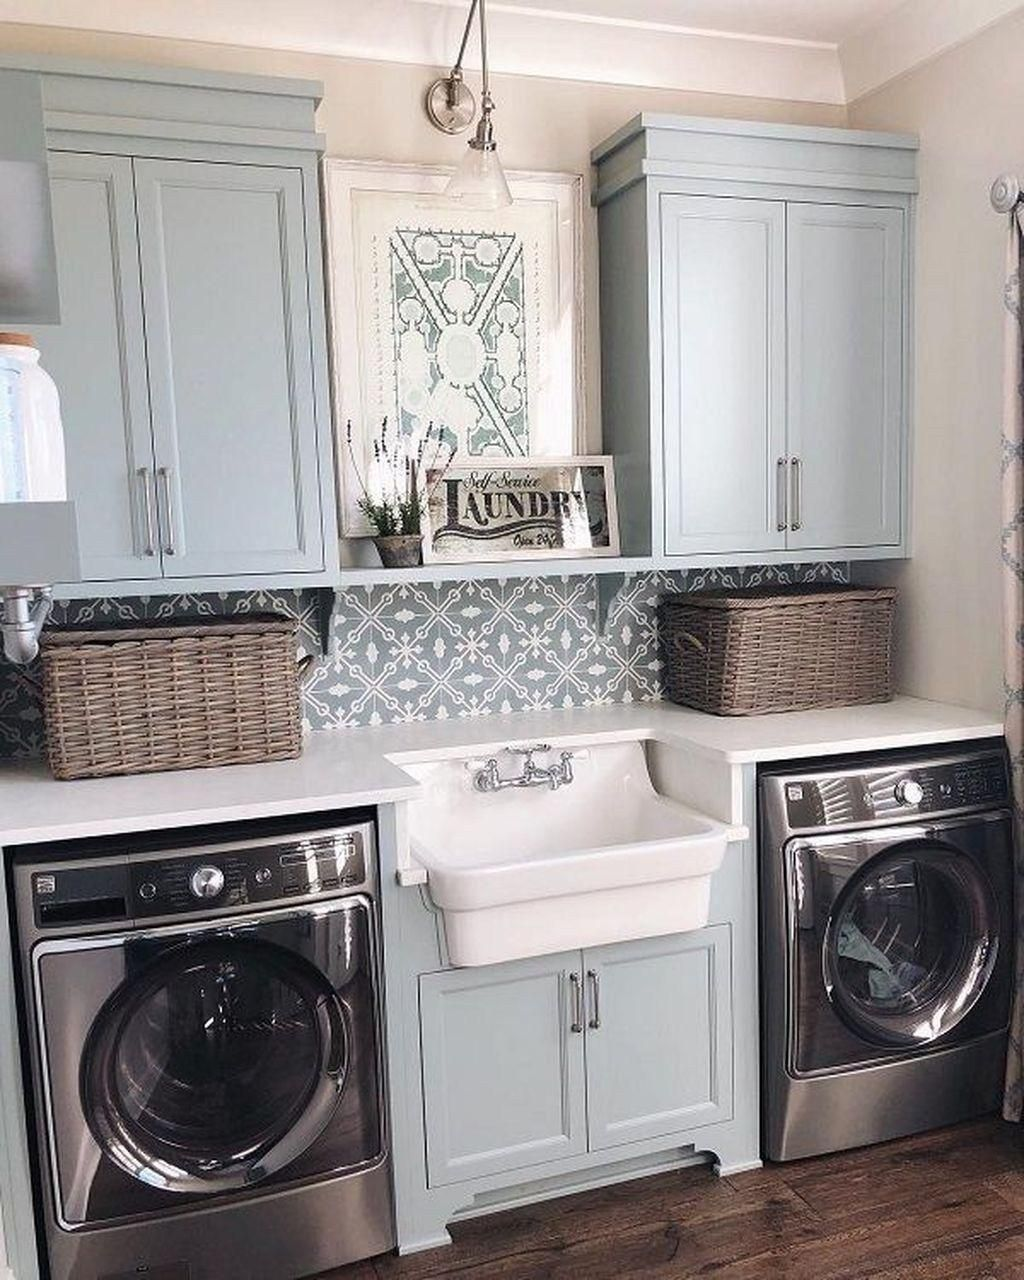 Amazing Farmhouse Laundry Room Decor Ideas 10 Dream Laundry Room Laundry Room Remodel Laundry Room Inspiration